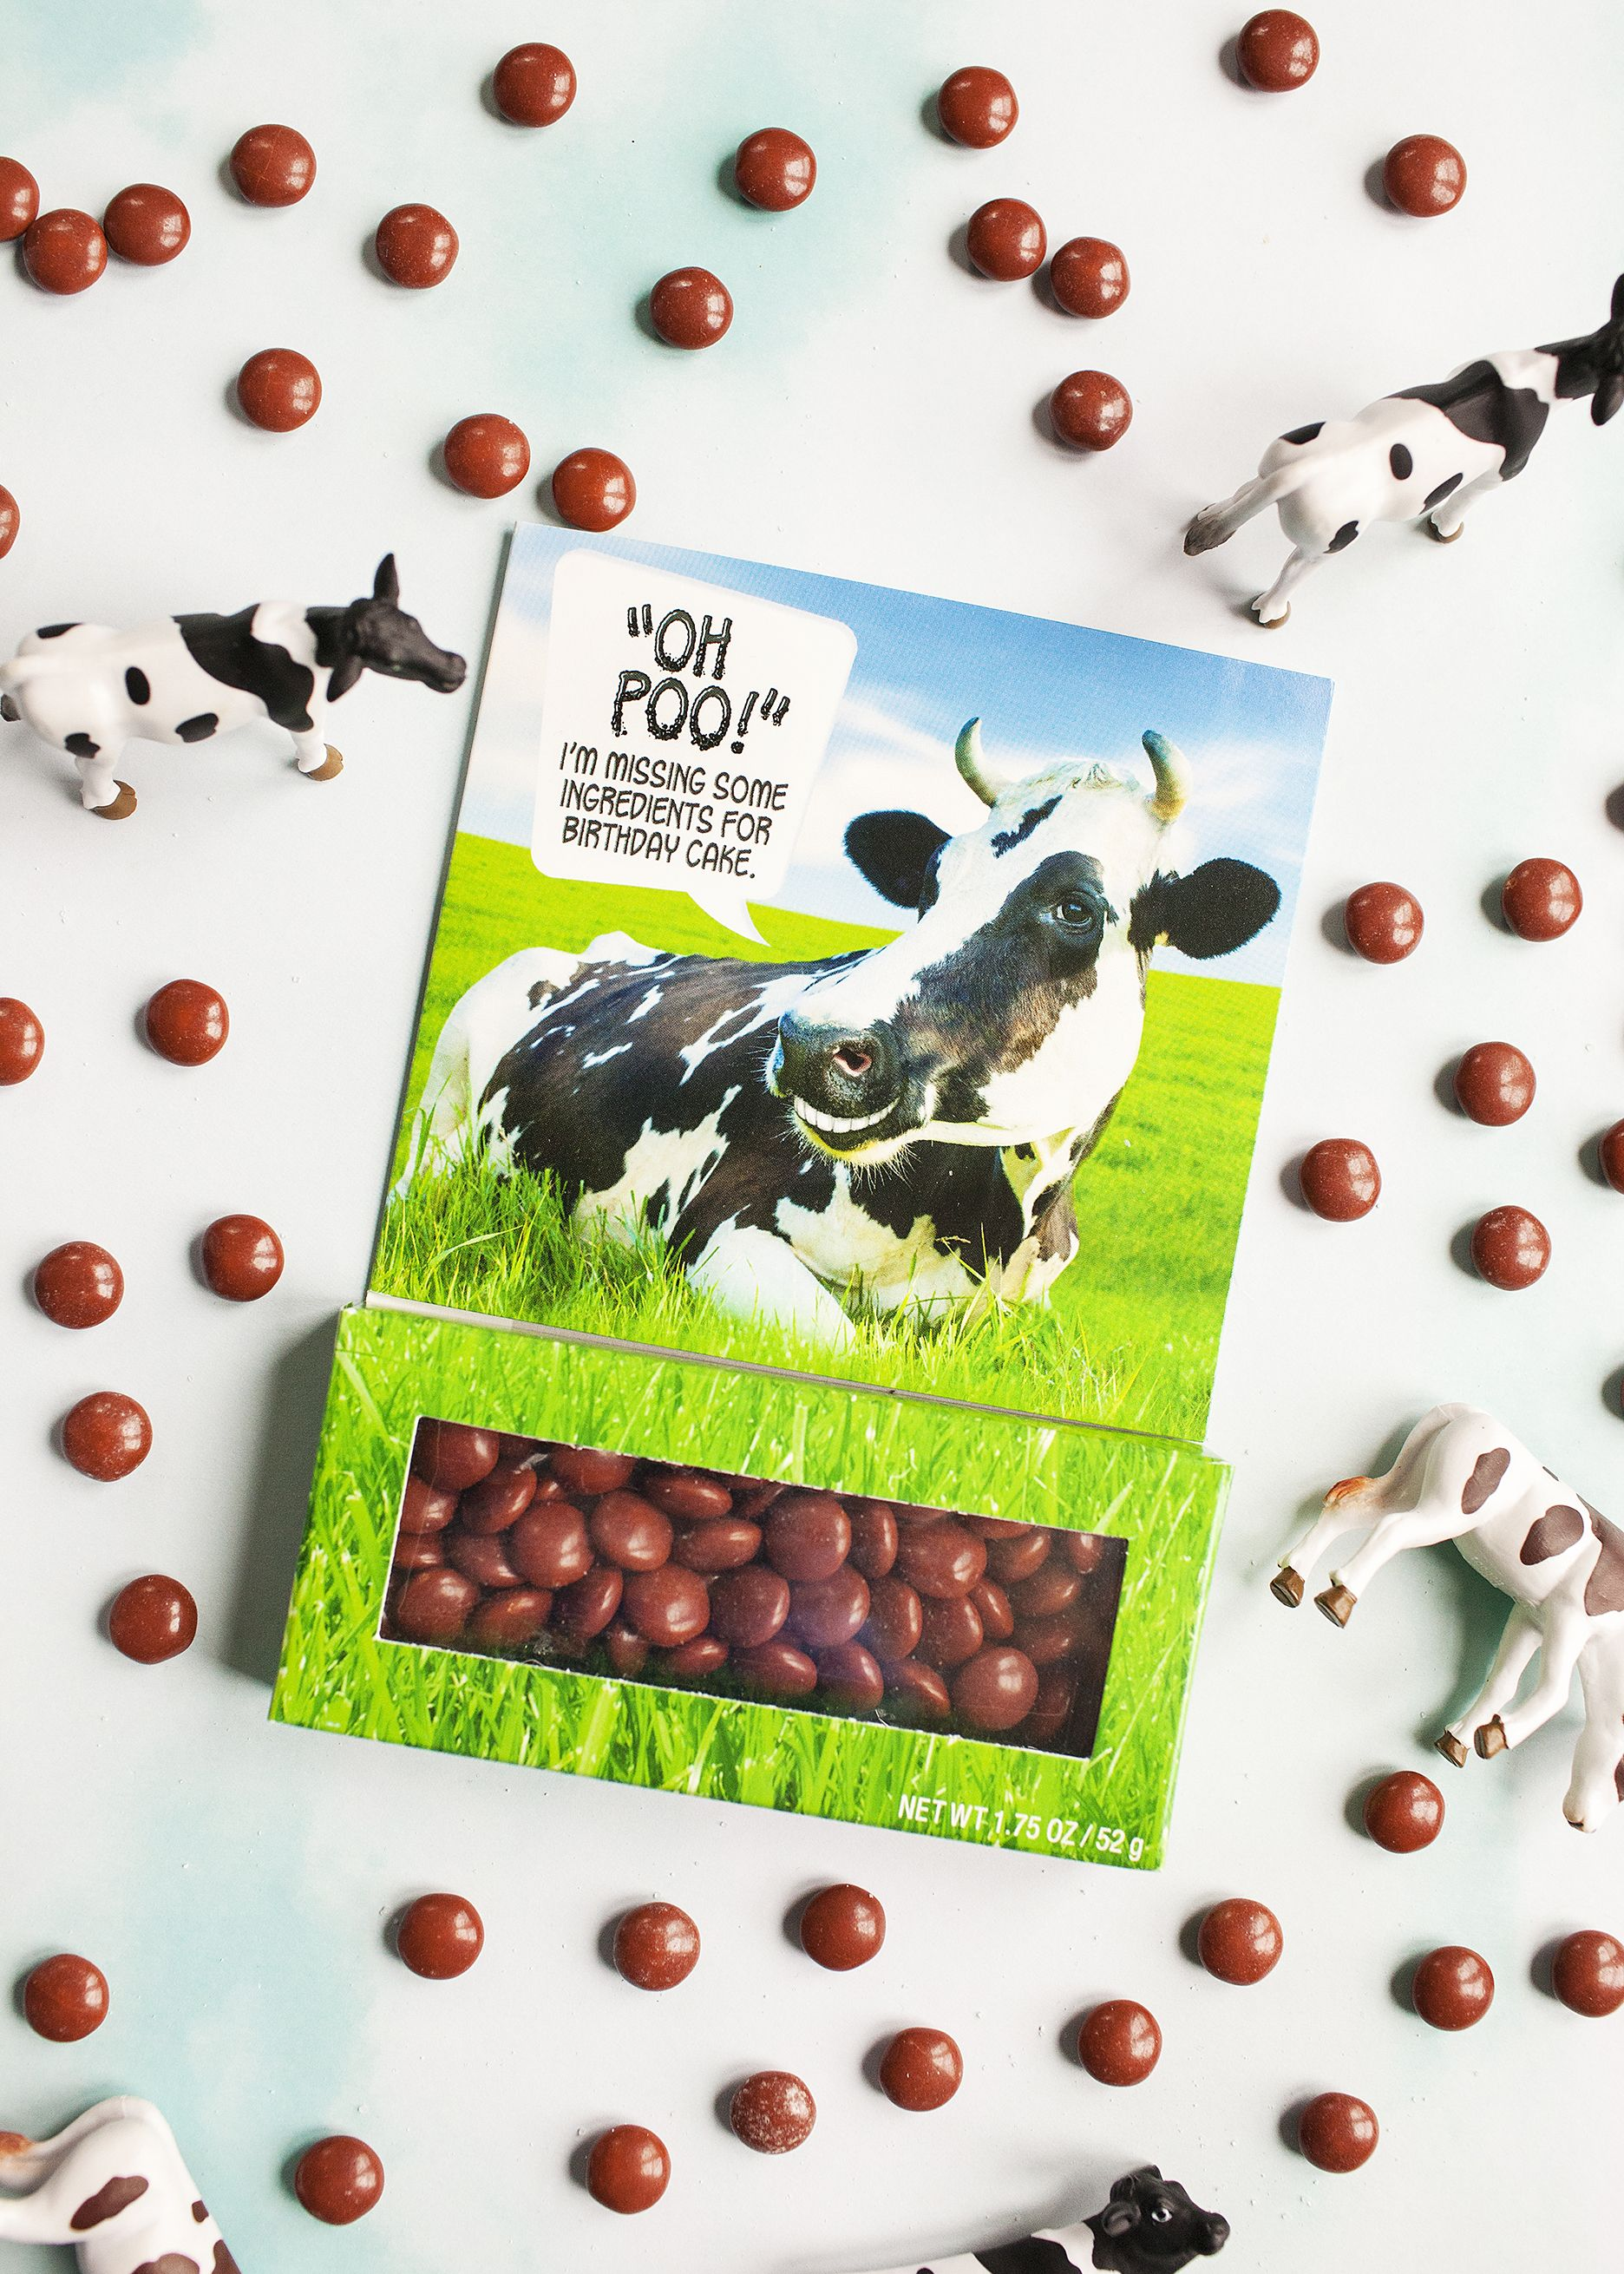 Oh Poo Funny Birthday Card With Cows And Chocolate Candy Inside Visit The Link